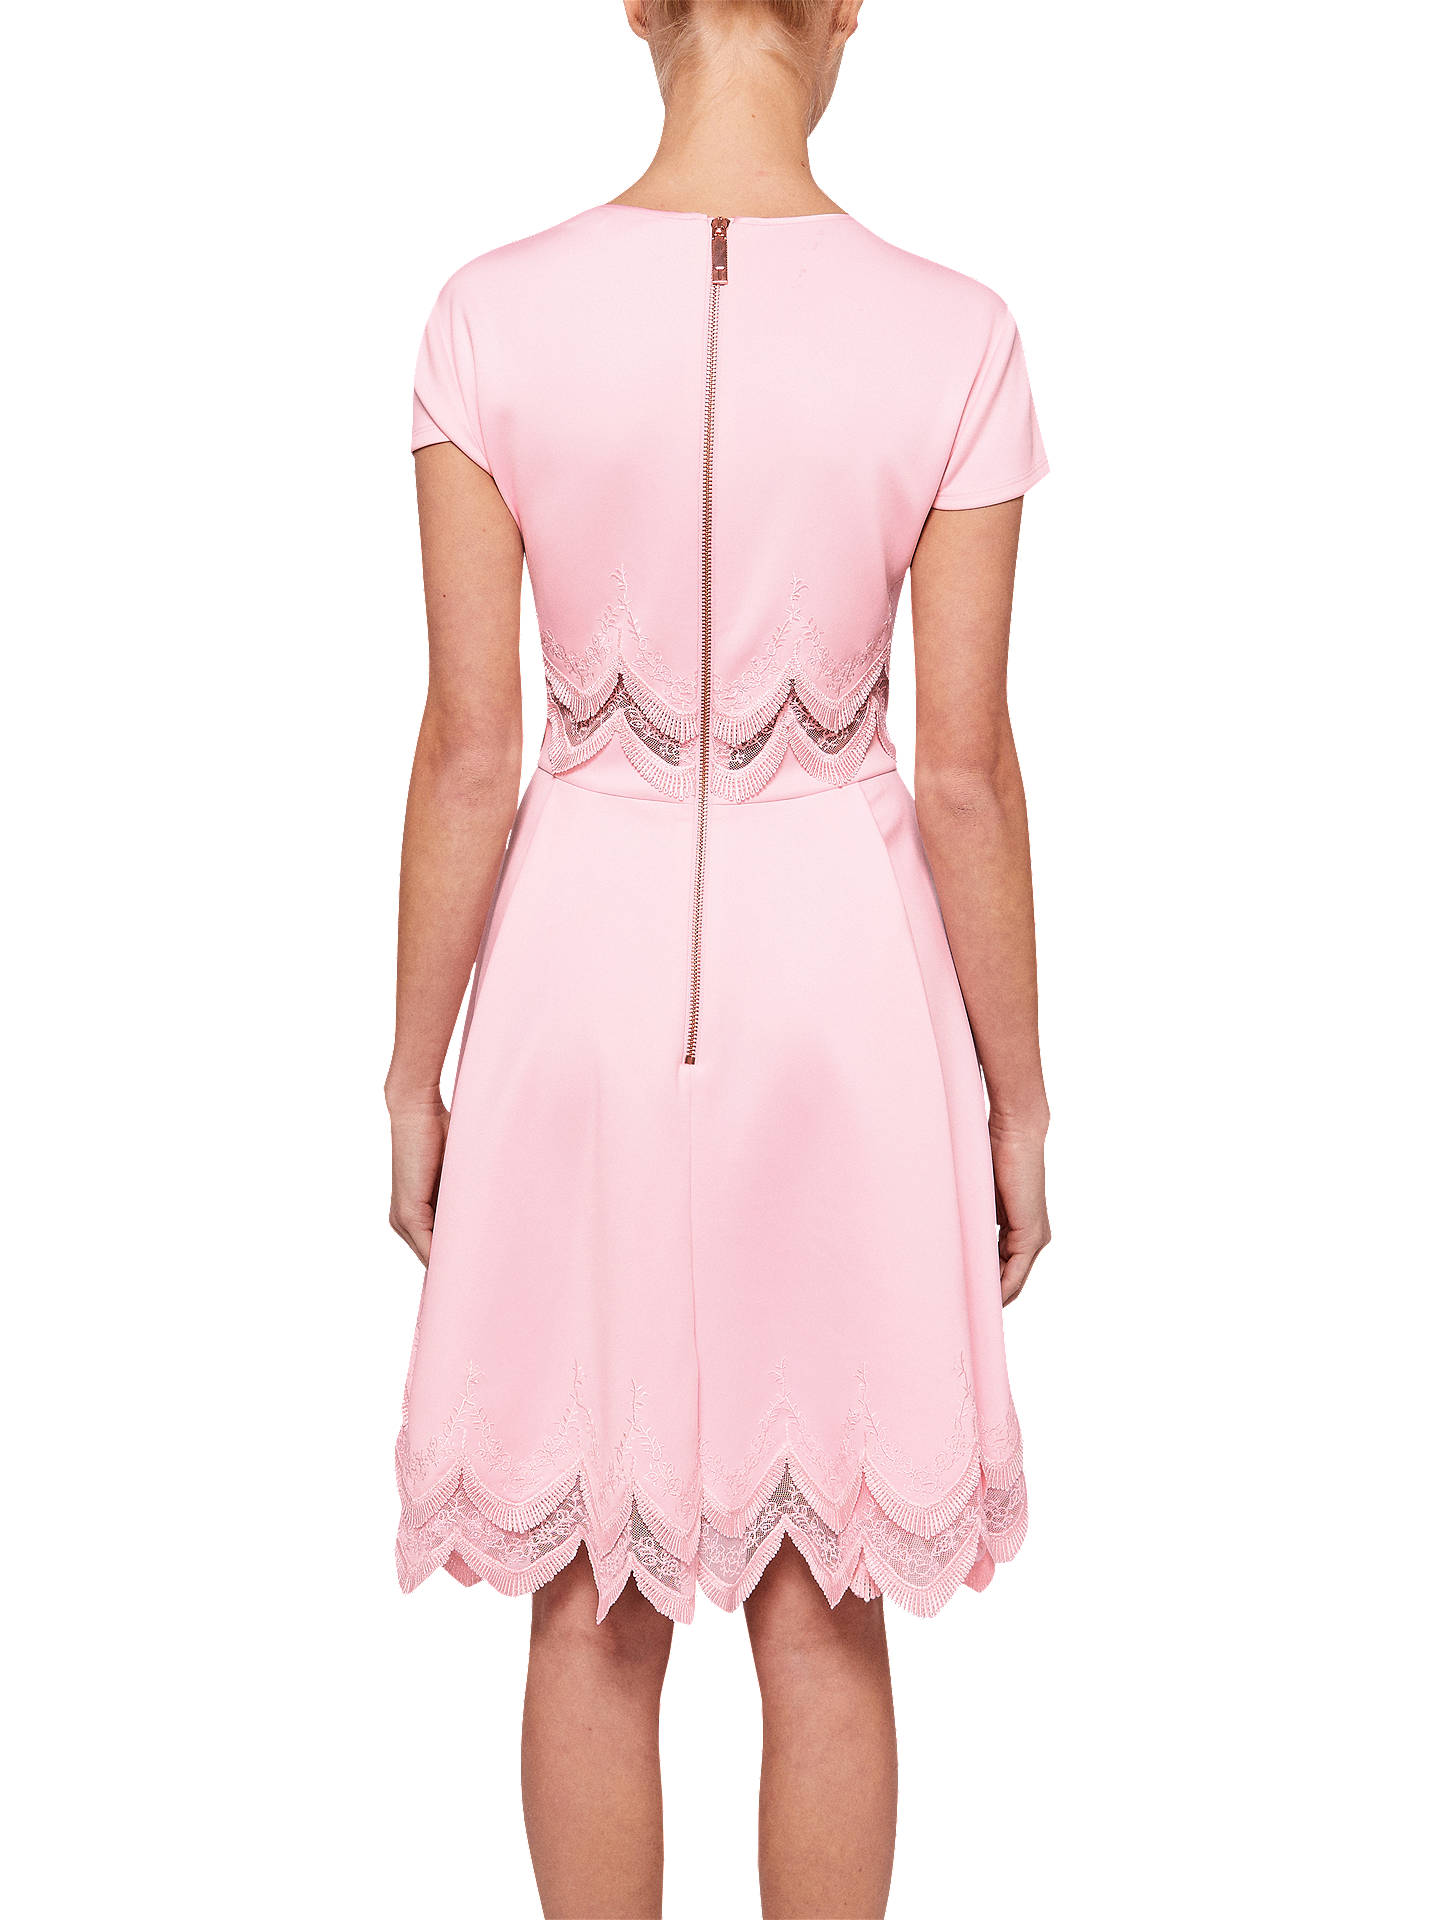 BuyTed Baker Rehanna Embroidered Skater Dress, Baby Pink, 2 Online at johnlewis.com